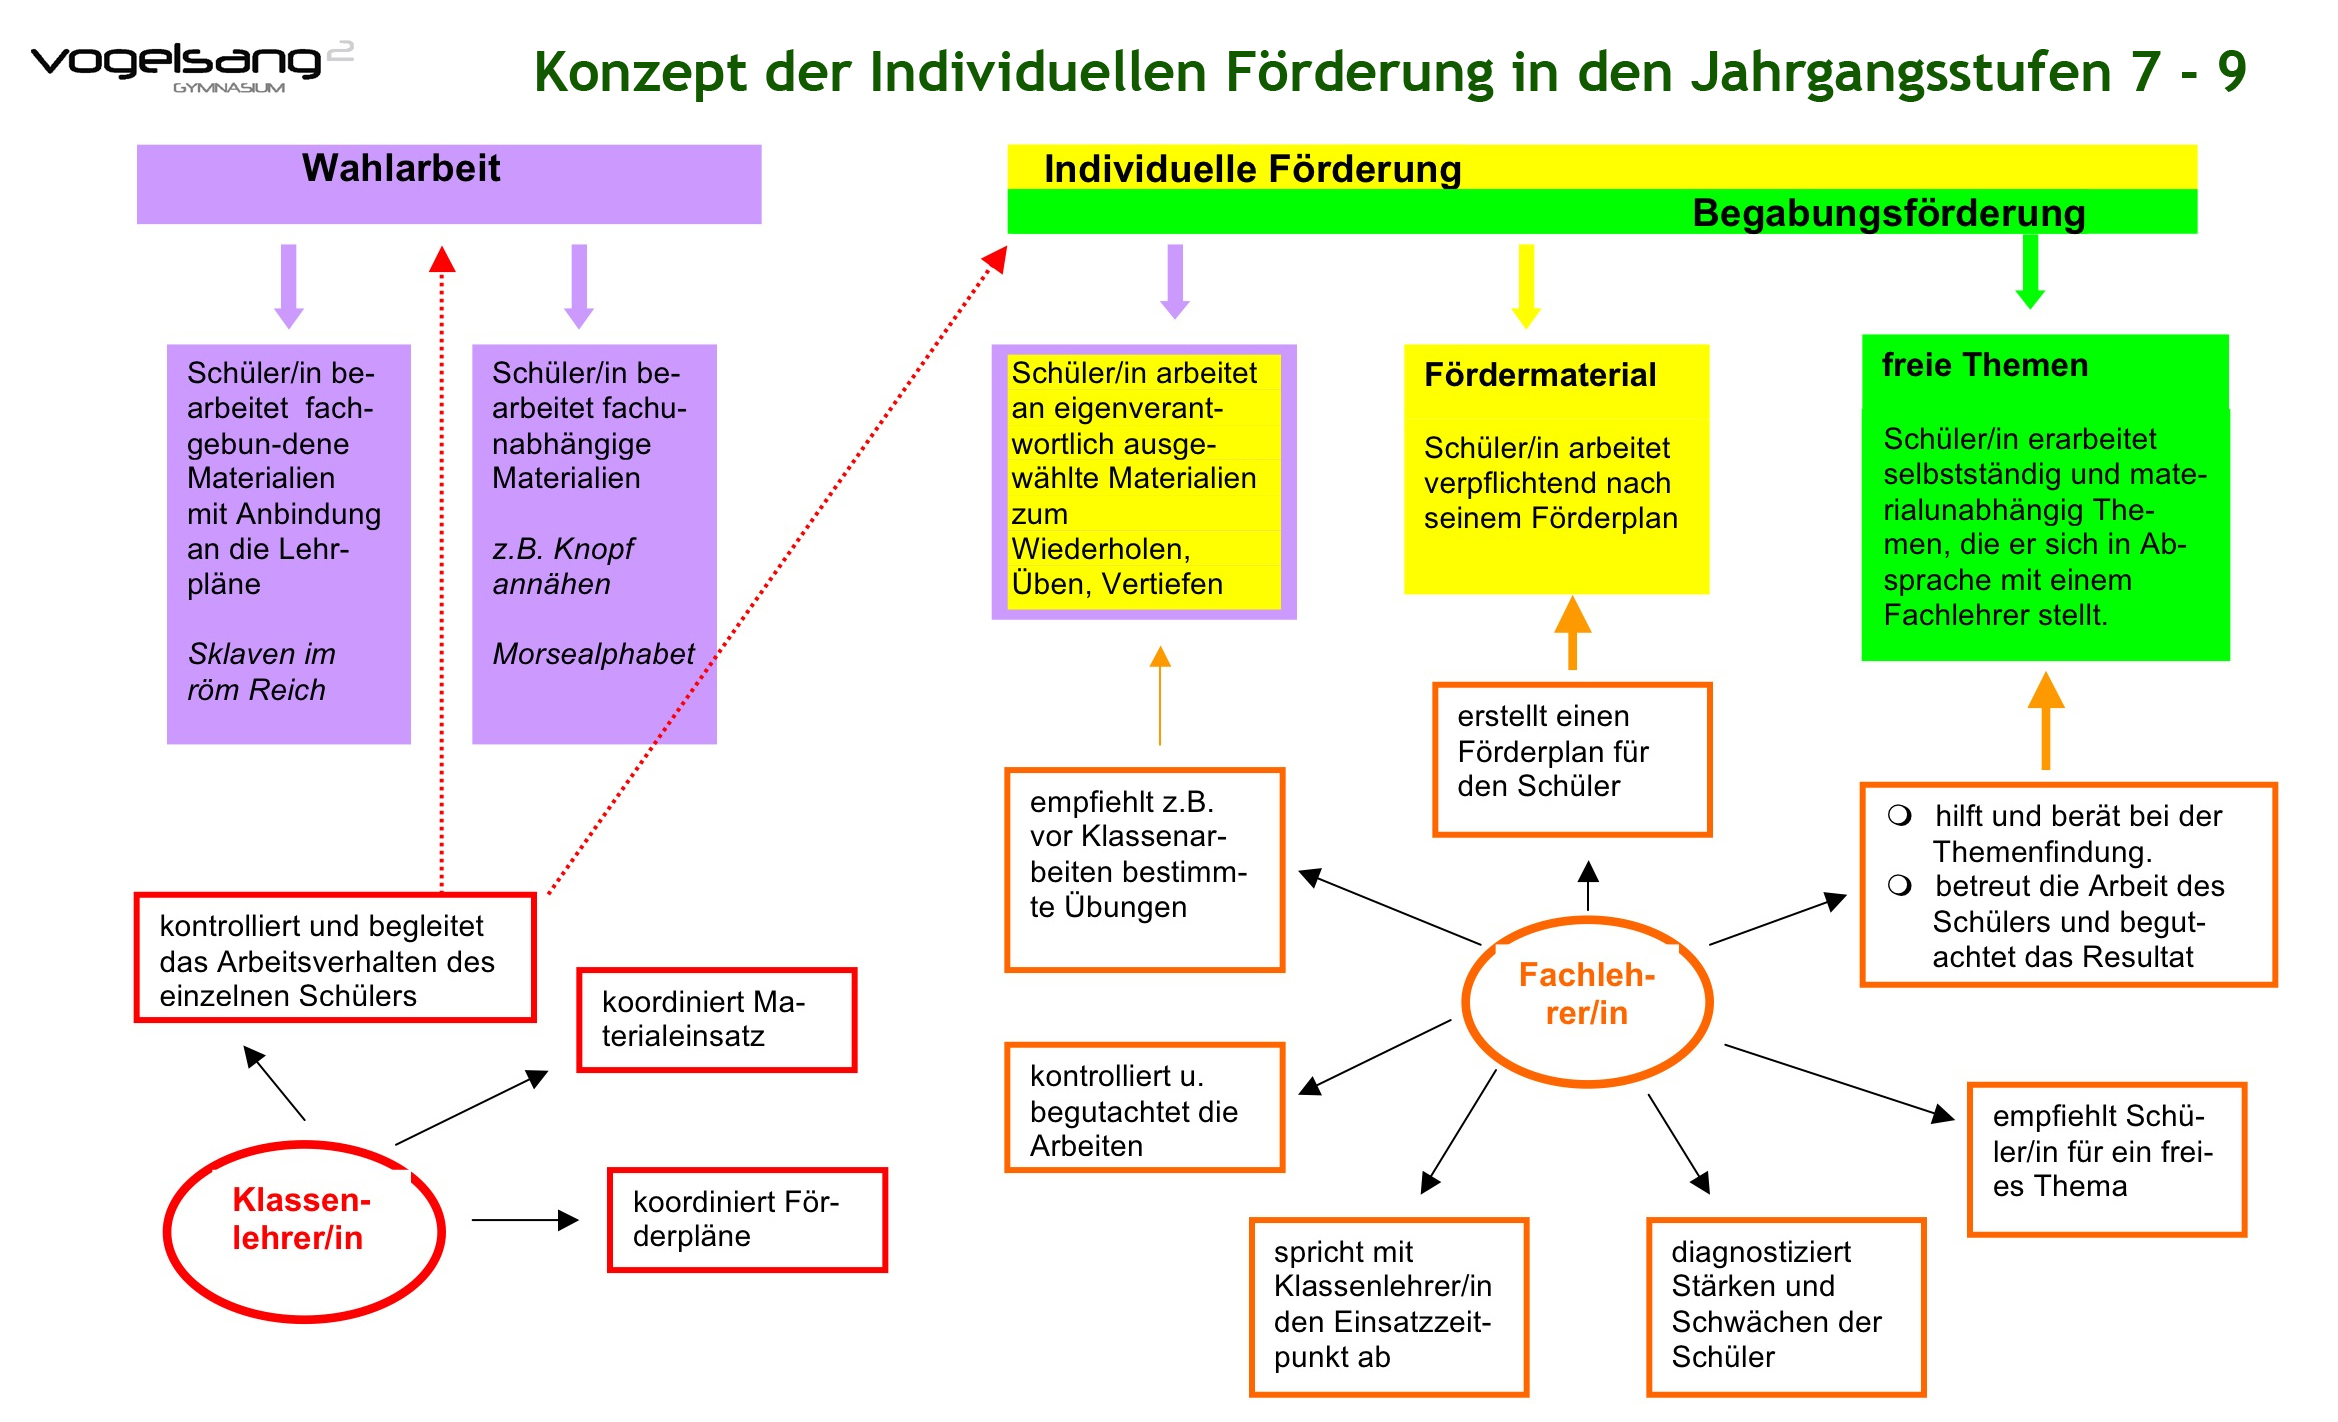 Individuelle Forderung